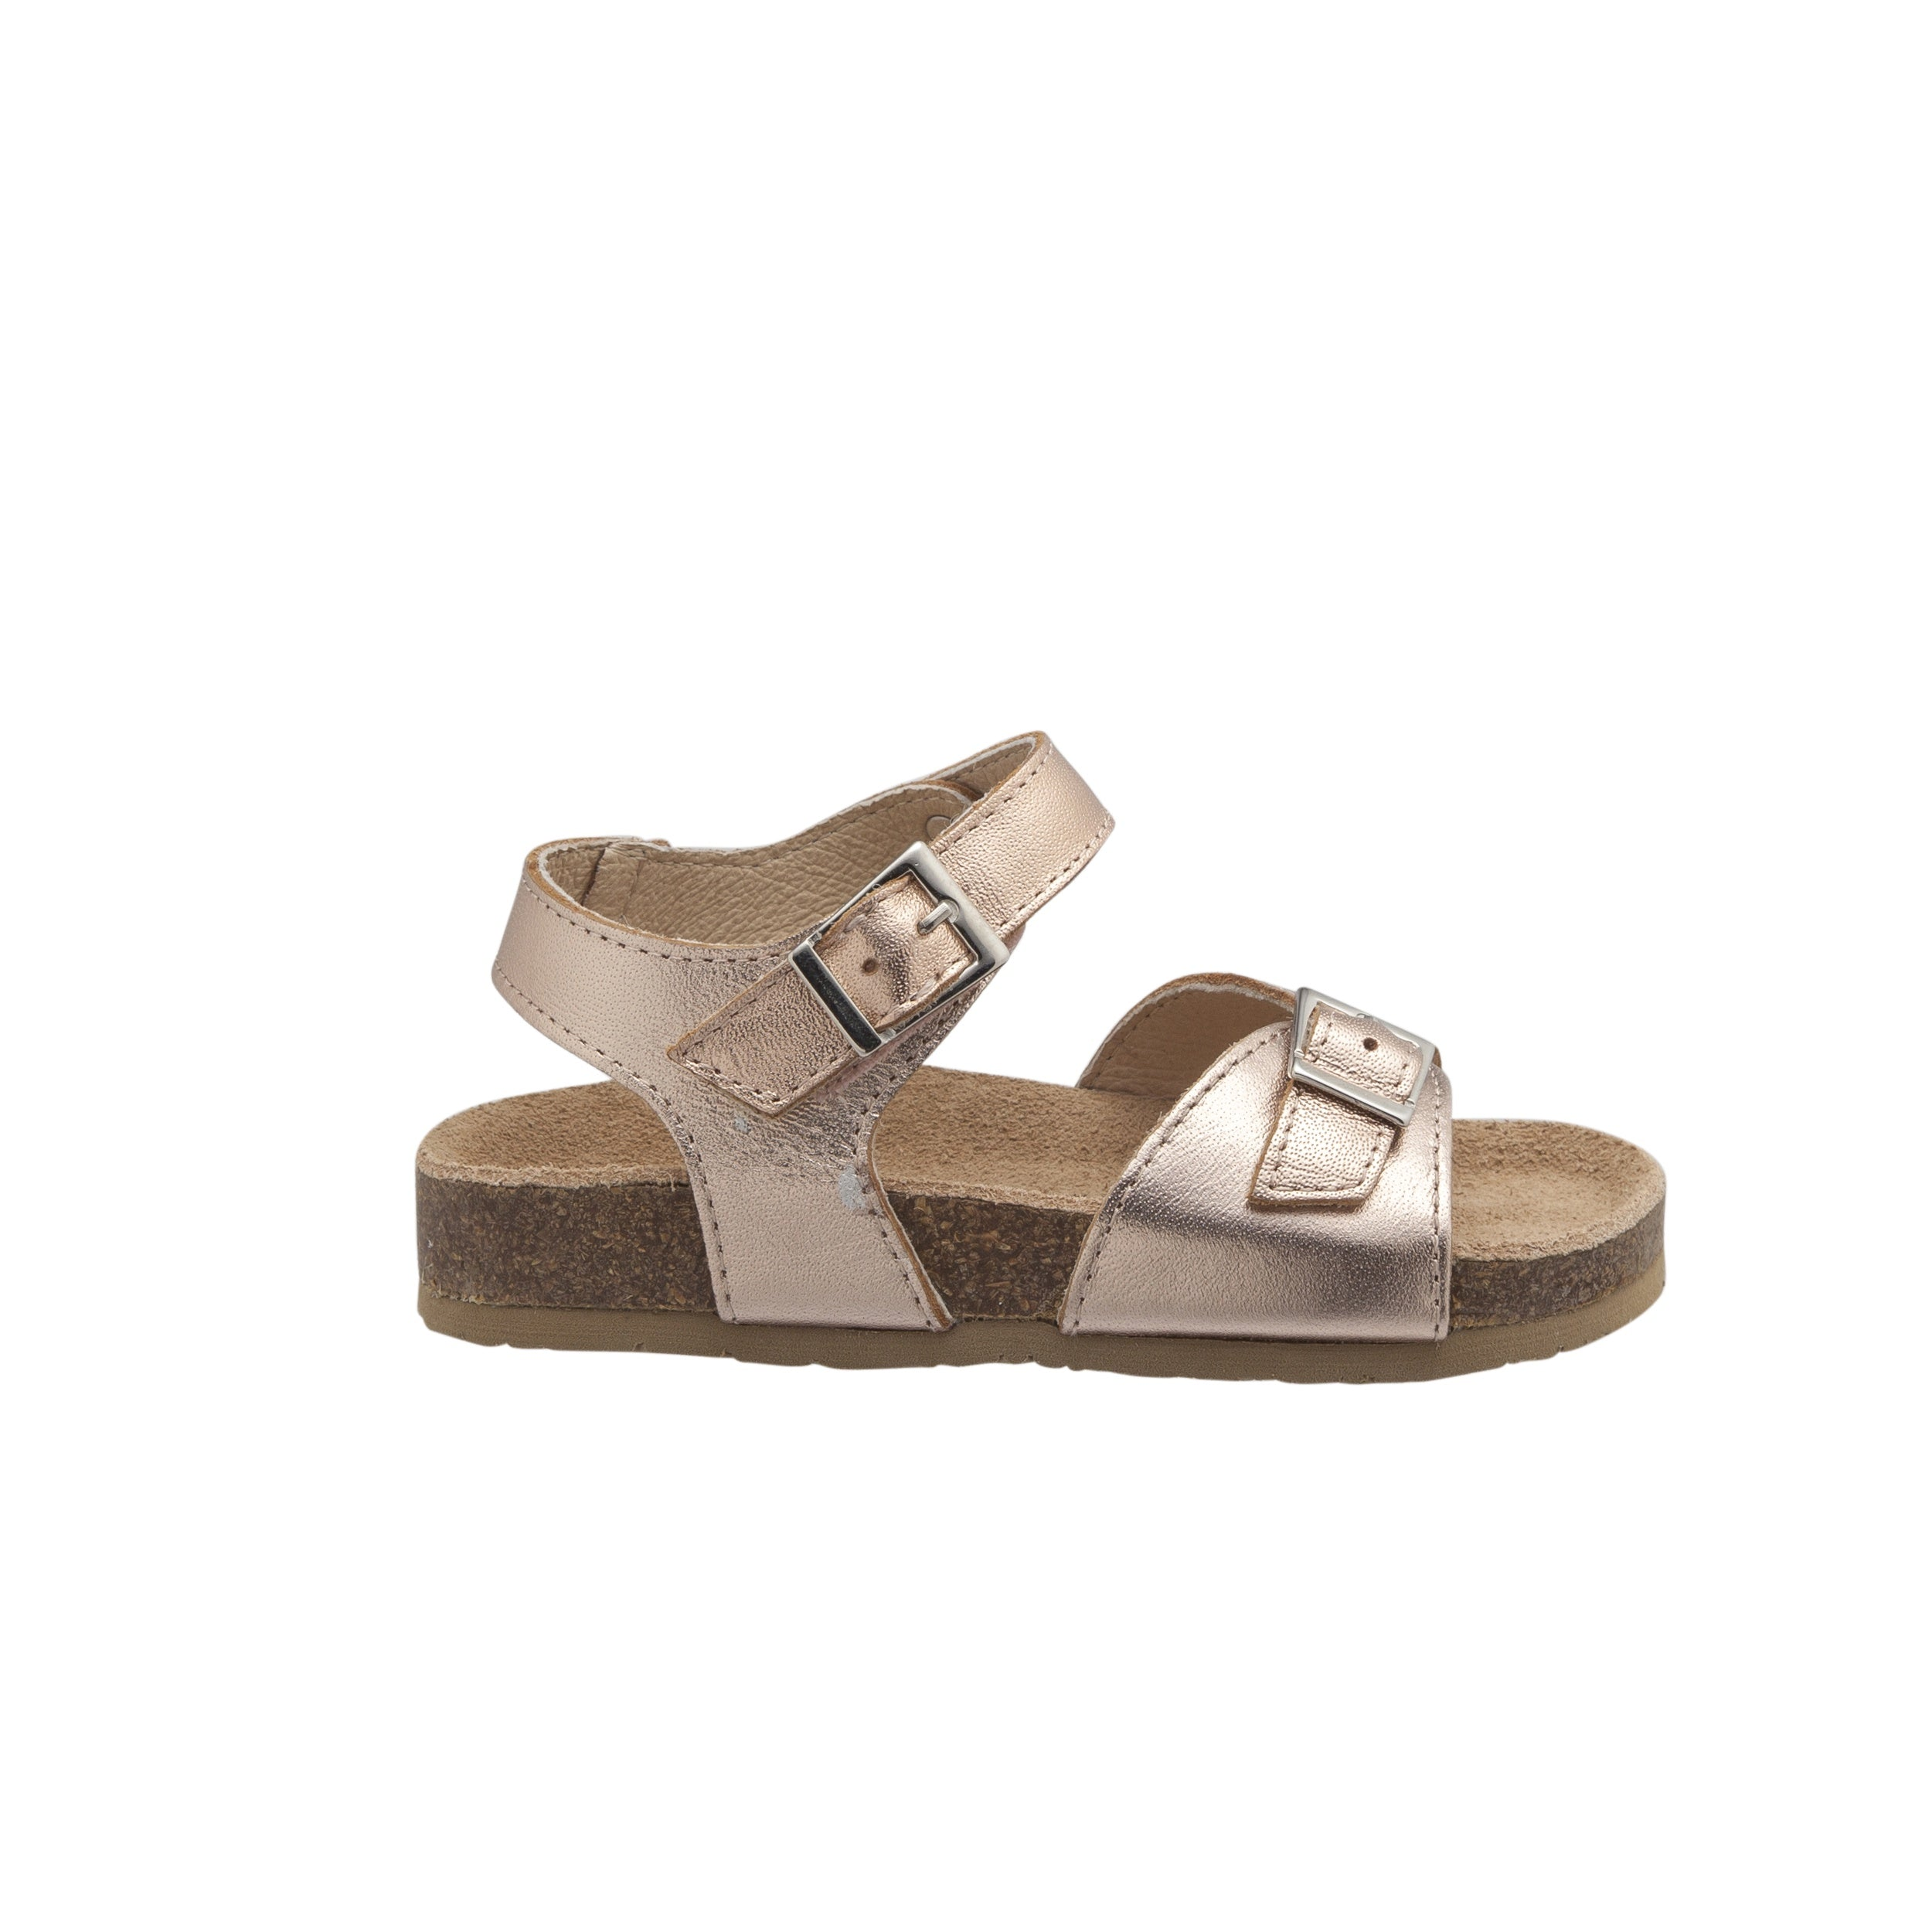 Rose Gold Retreat Sandal. Old Soles leather summer 2020. Shop Local or instore or online at Sticky Fingers Children Boutique , Niddrie, Melbourne.